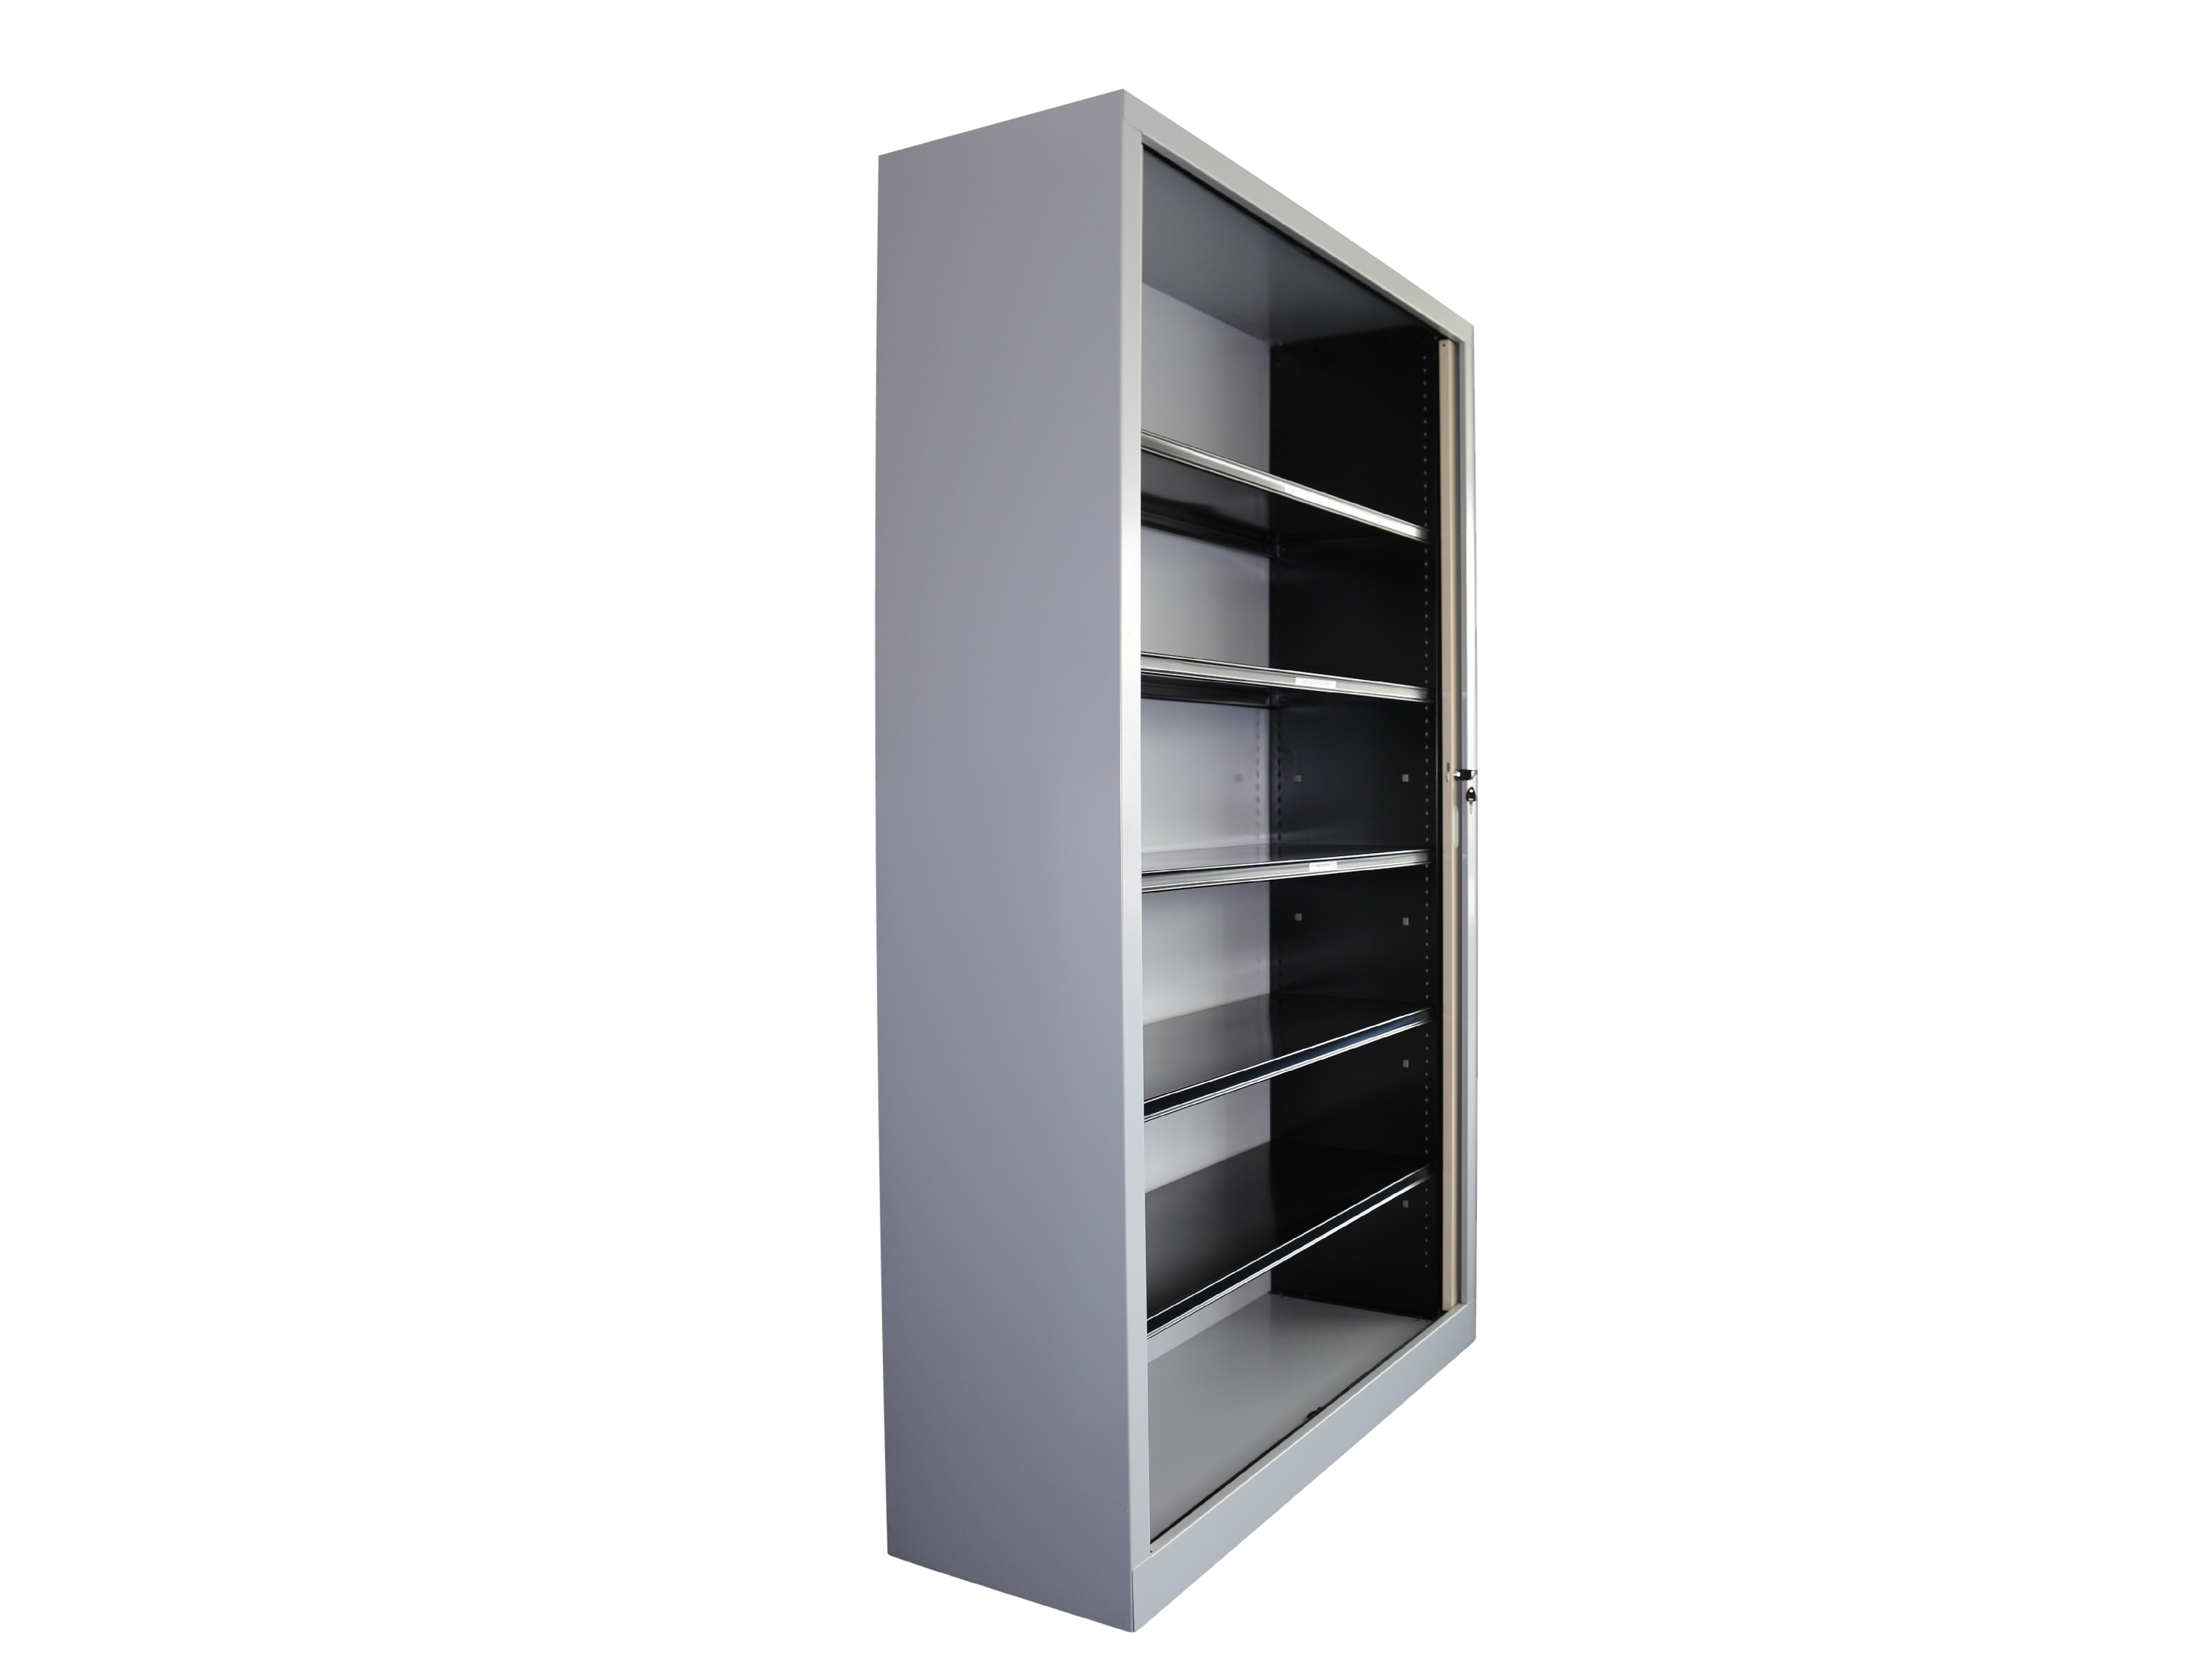 armoire designe armoire metallique bureau d occasion dernier cabinet id es pour la maison. Black Bedroom Furniture Sets. Home Design Ideas